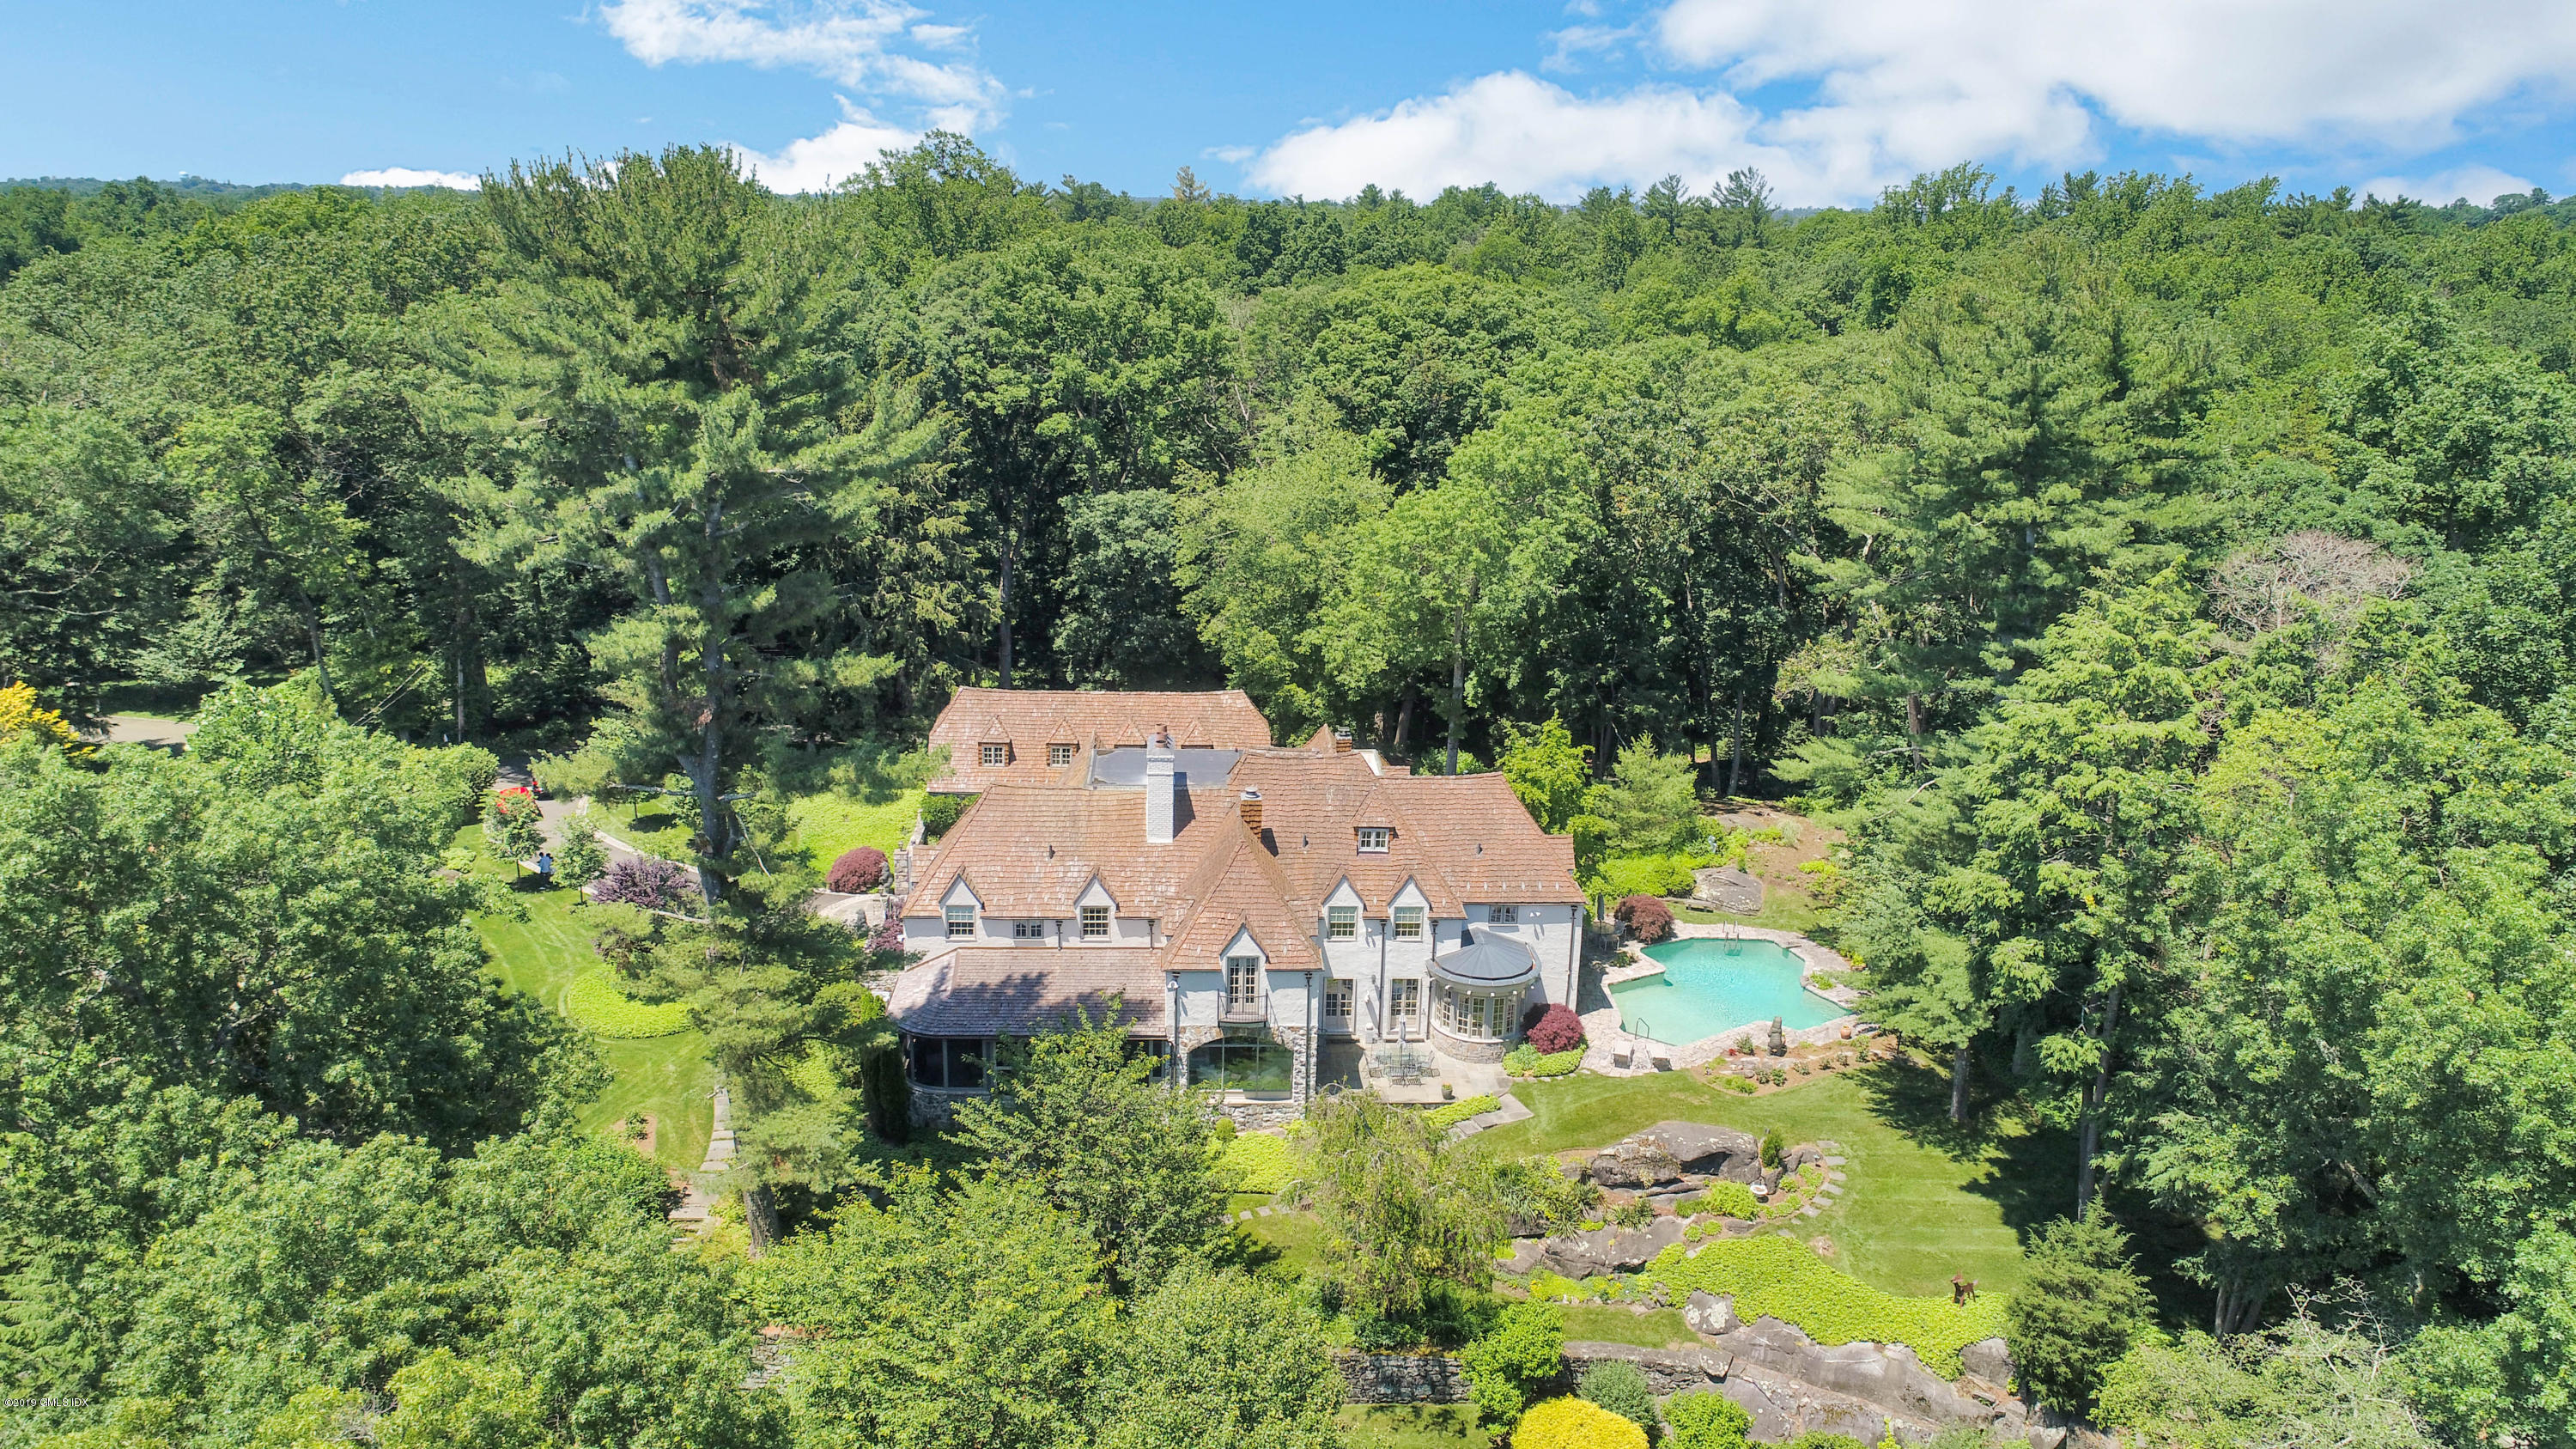 22 Frost Road,Greenwich,Connecticut 06830,6 Bedrooms Bedrooms,8 BathroomsBathrooms,Single family,Frost,105834